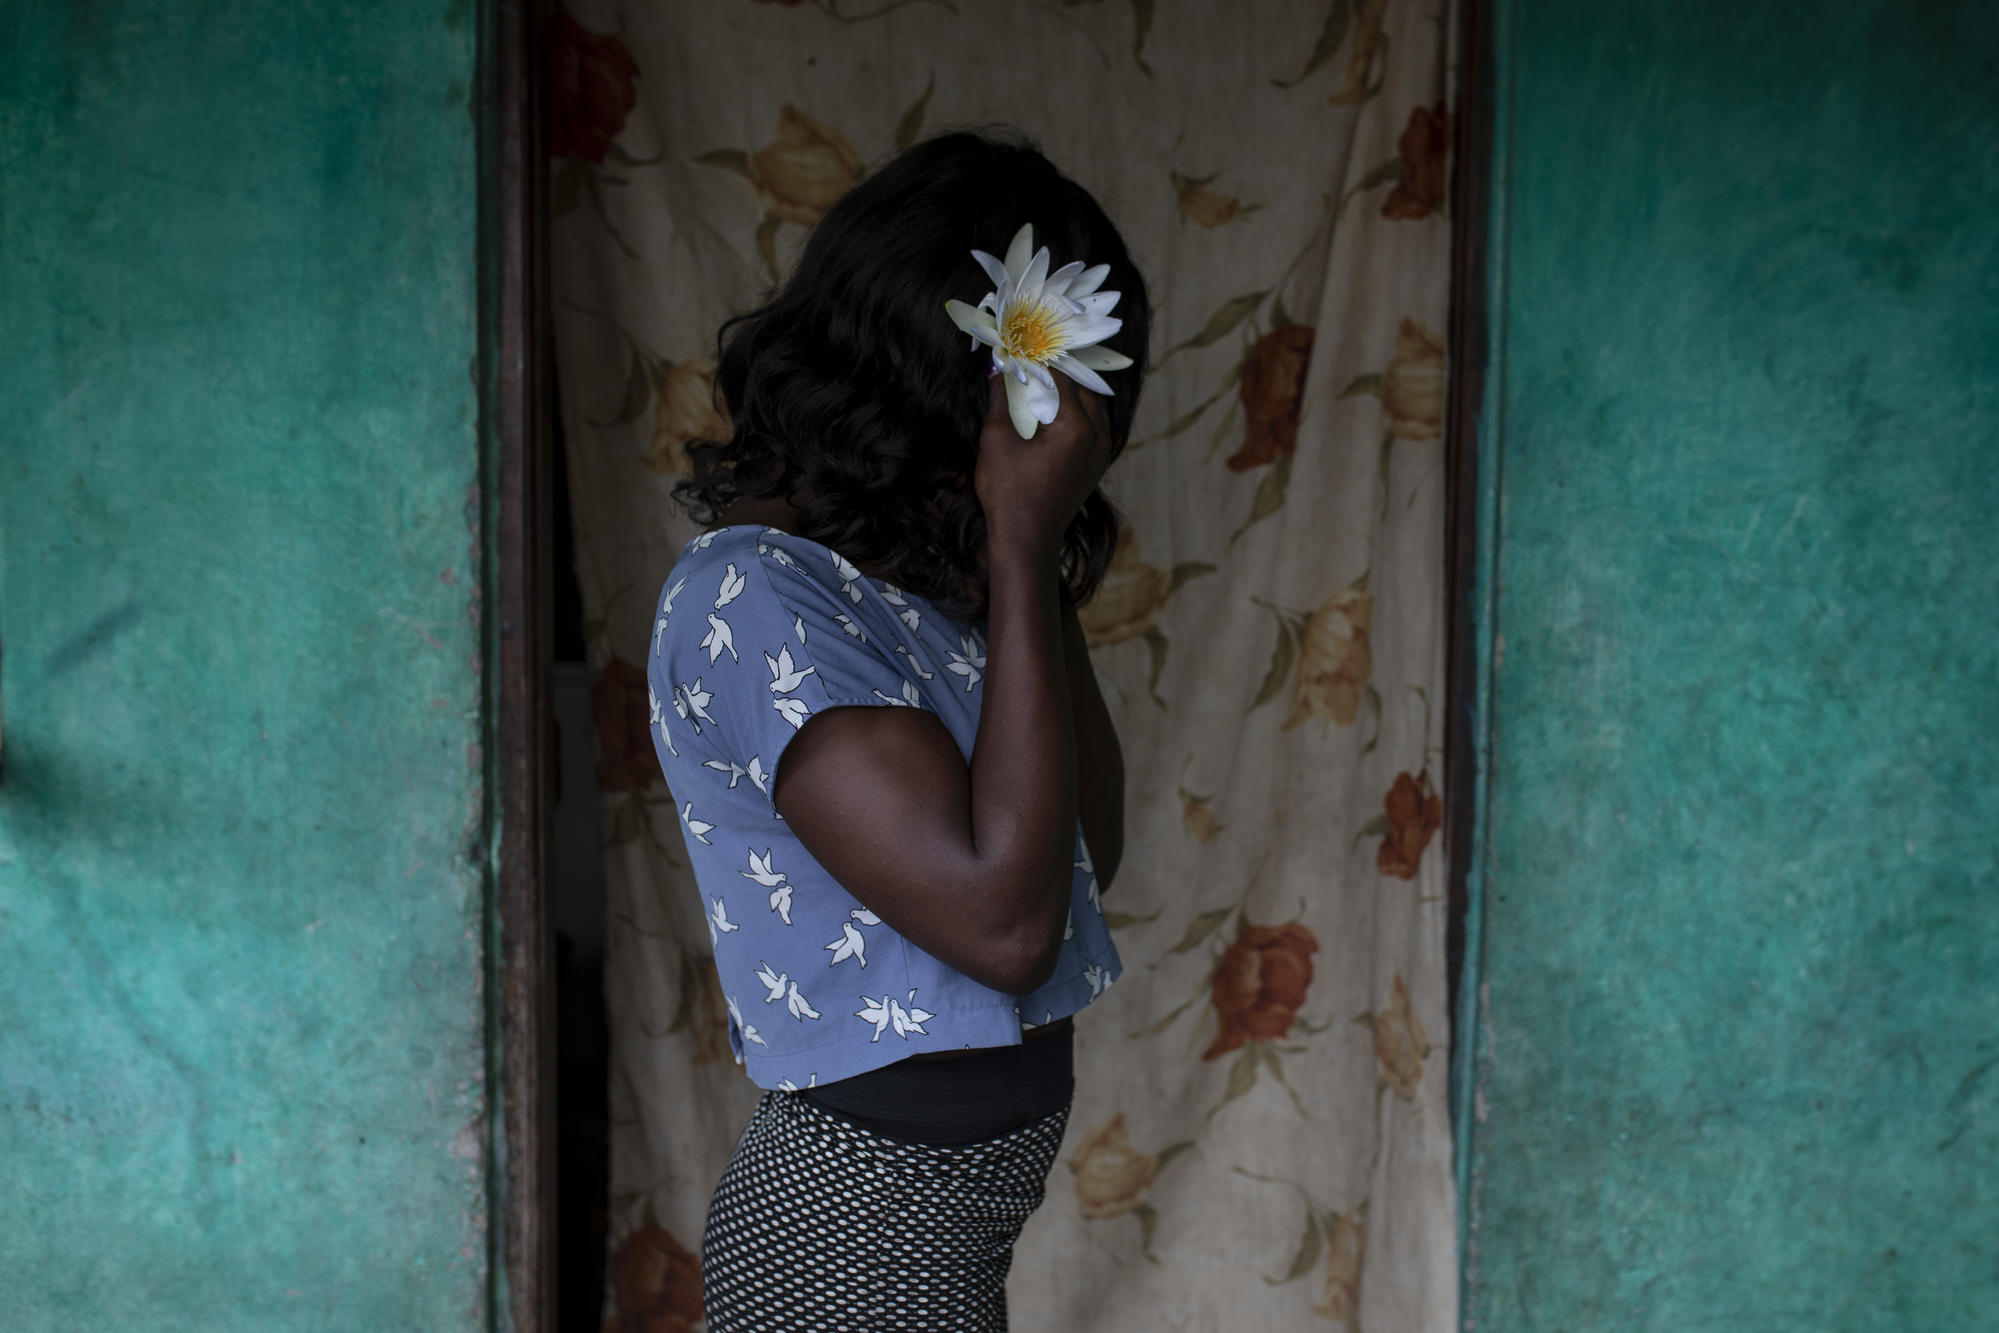 Paula [pseudonym], a sex worker and MSF HIV patient in Beira.